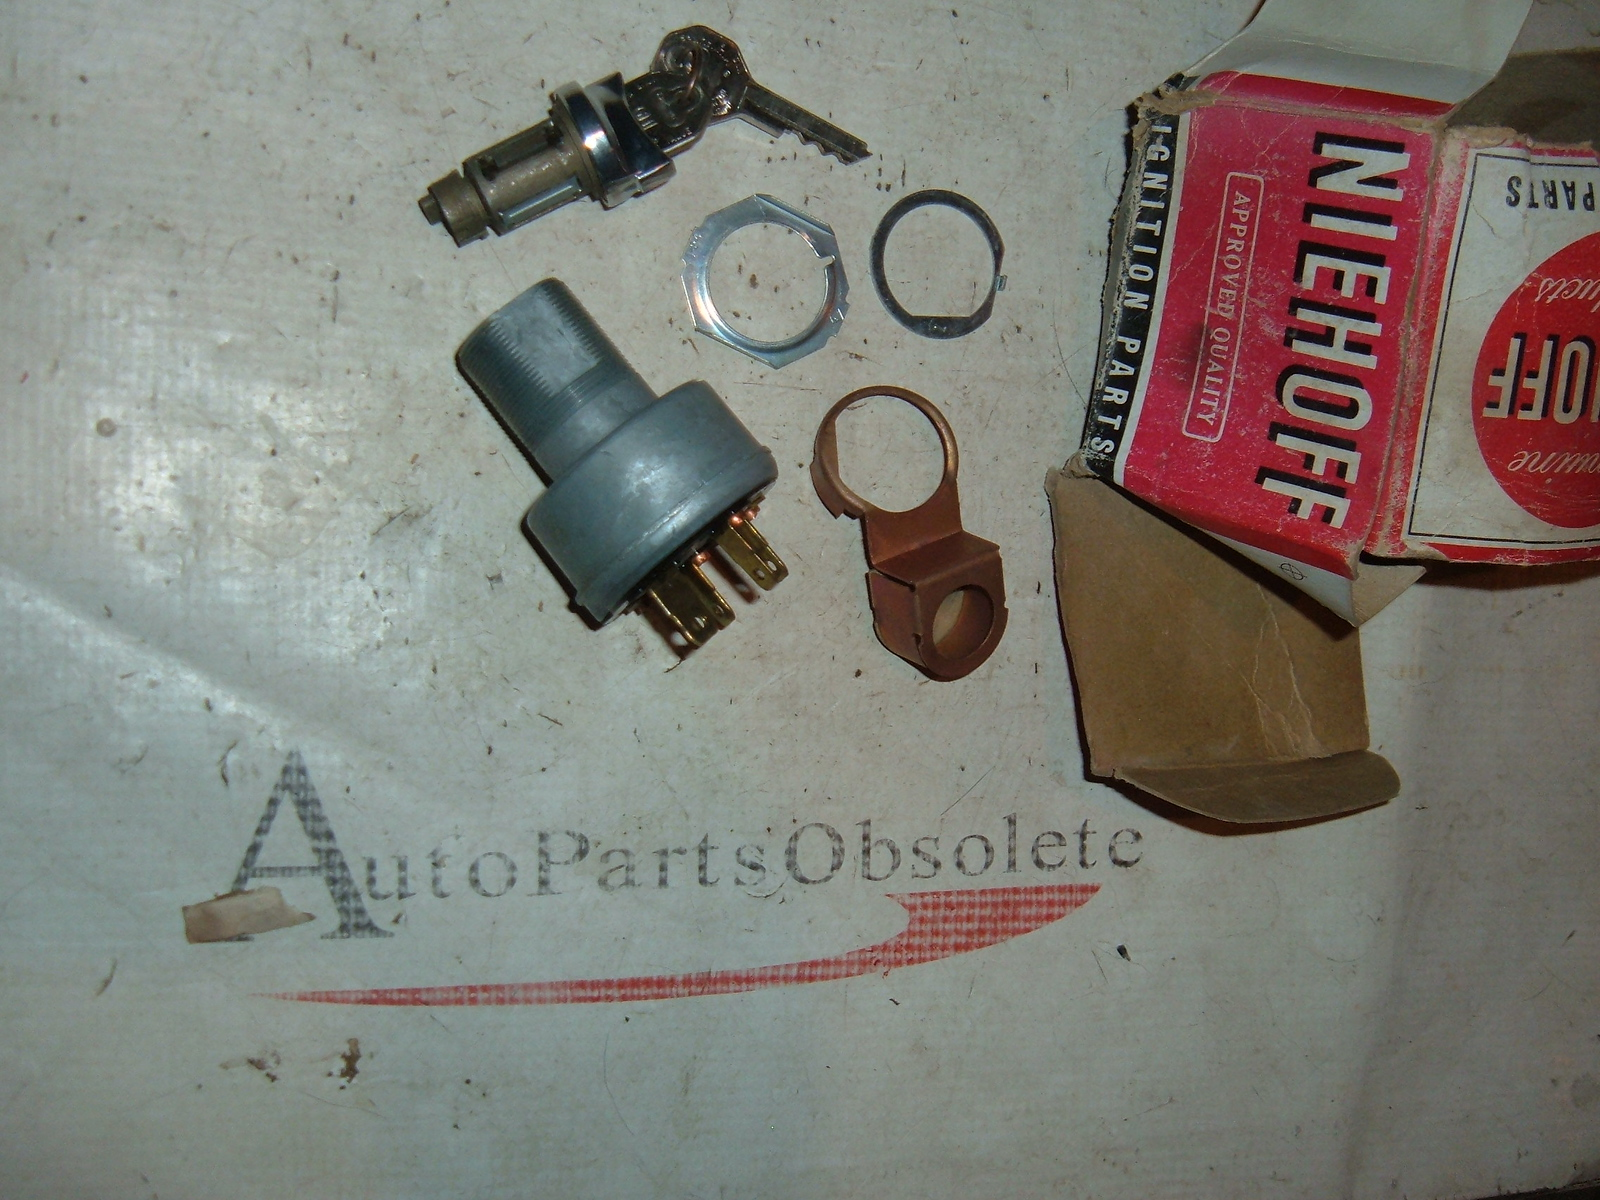 1960 1962 1964 1966 impala nova buick ignition switch /w keys # ks6101 (z ks6101)